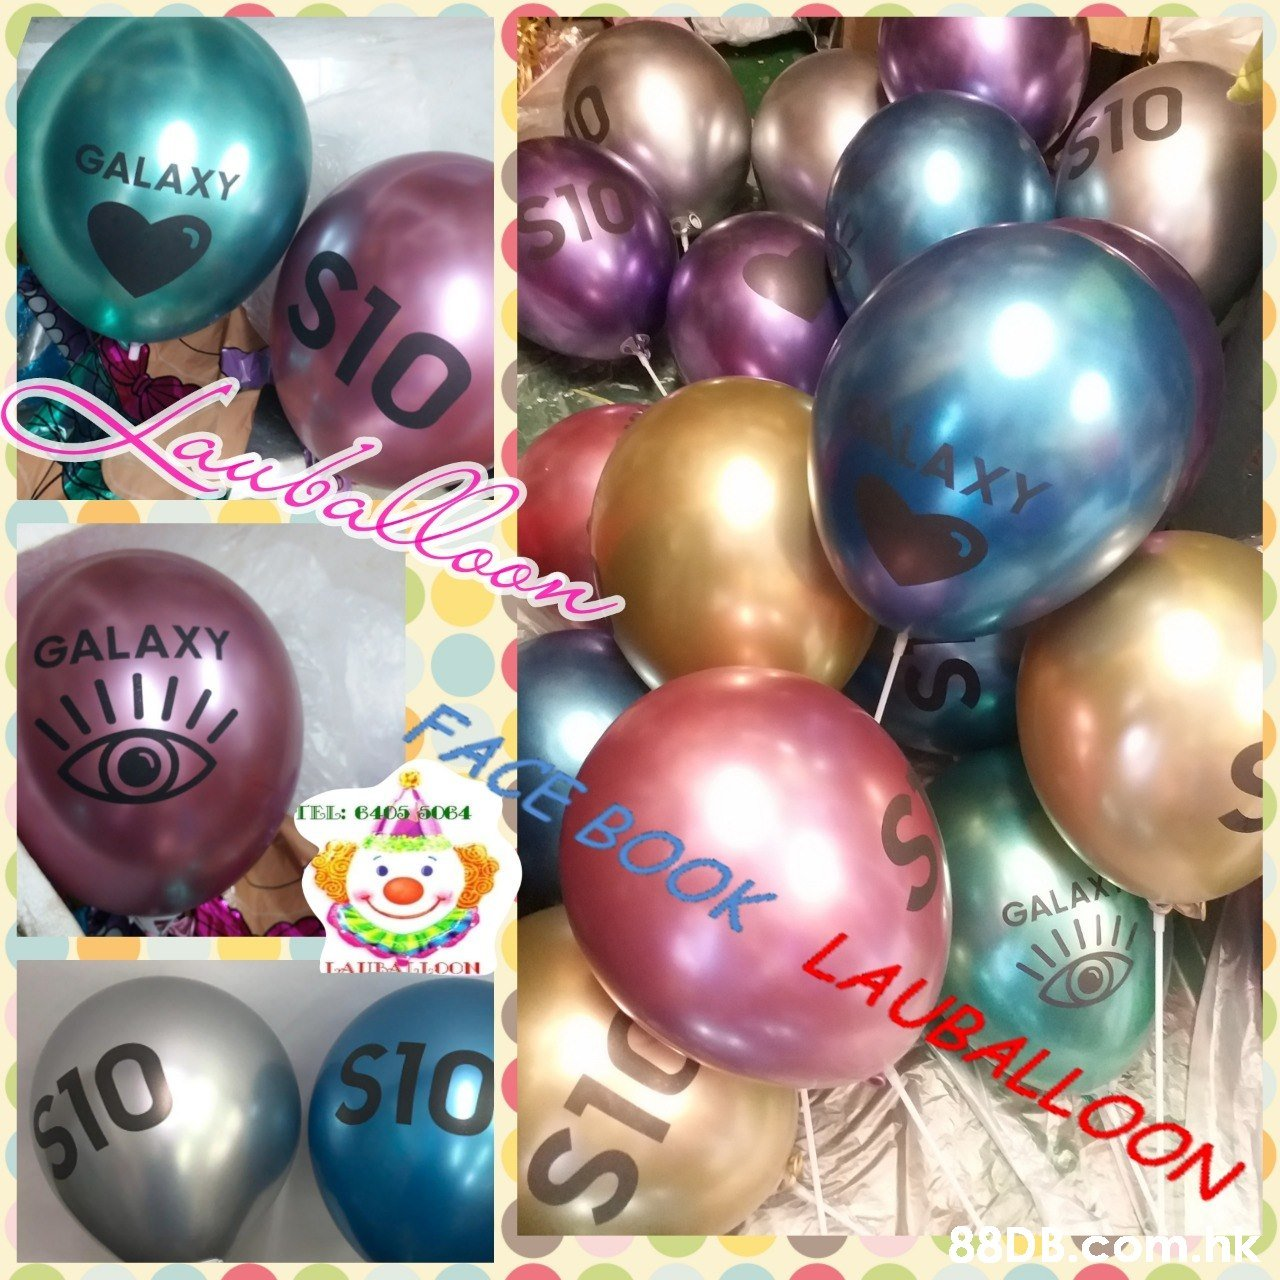 S10 GALAXY S10 STO AXY GALAXY FACE BOOK LAURALLOON TEL: 6405 5064 GALAX LAIEALLOON $10 .nk PLS  Balloon,Christmas ornament,Party supply,Ornament,Christmas decoration